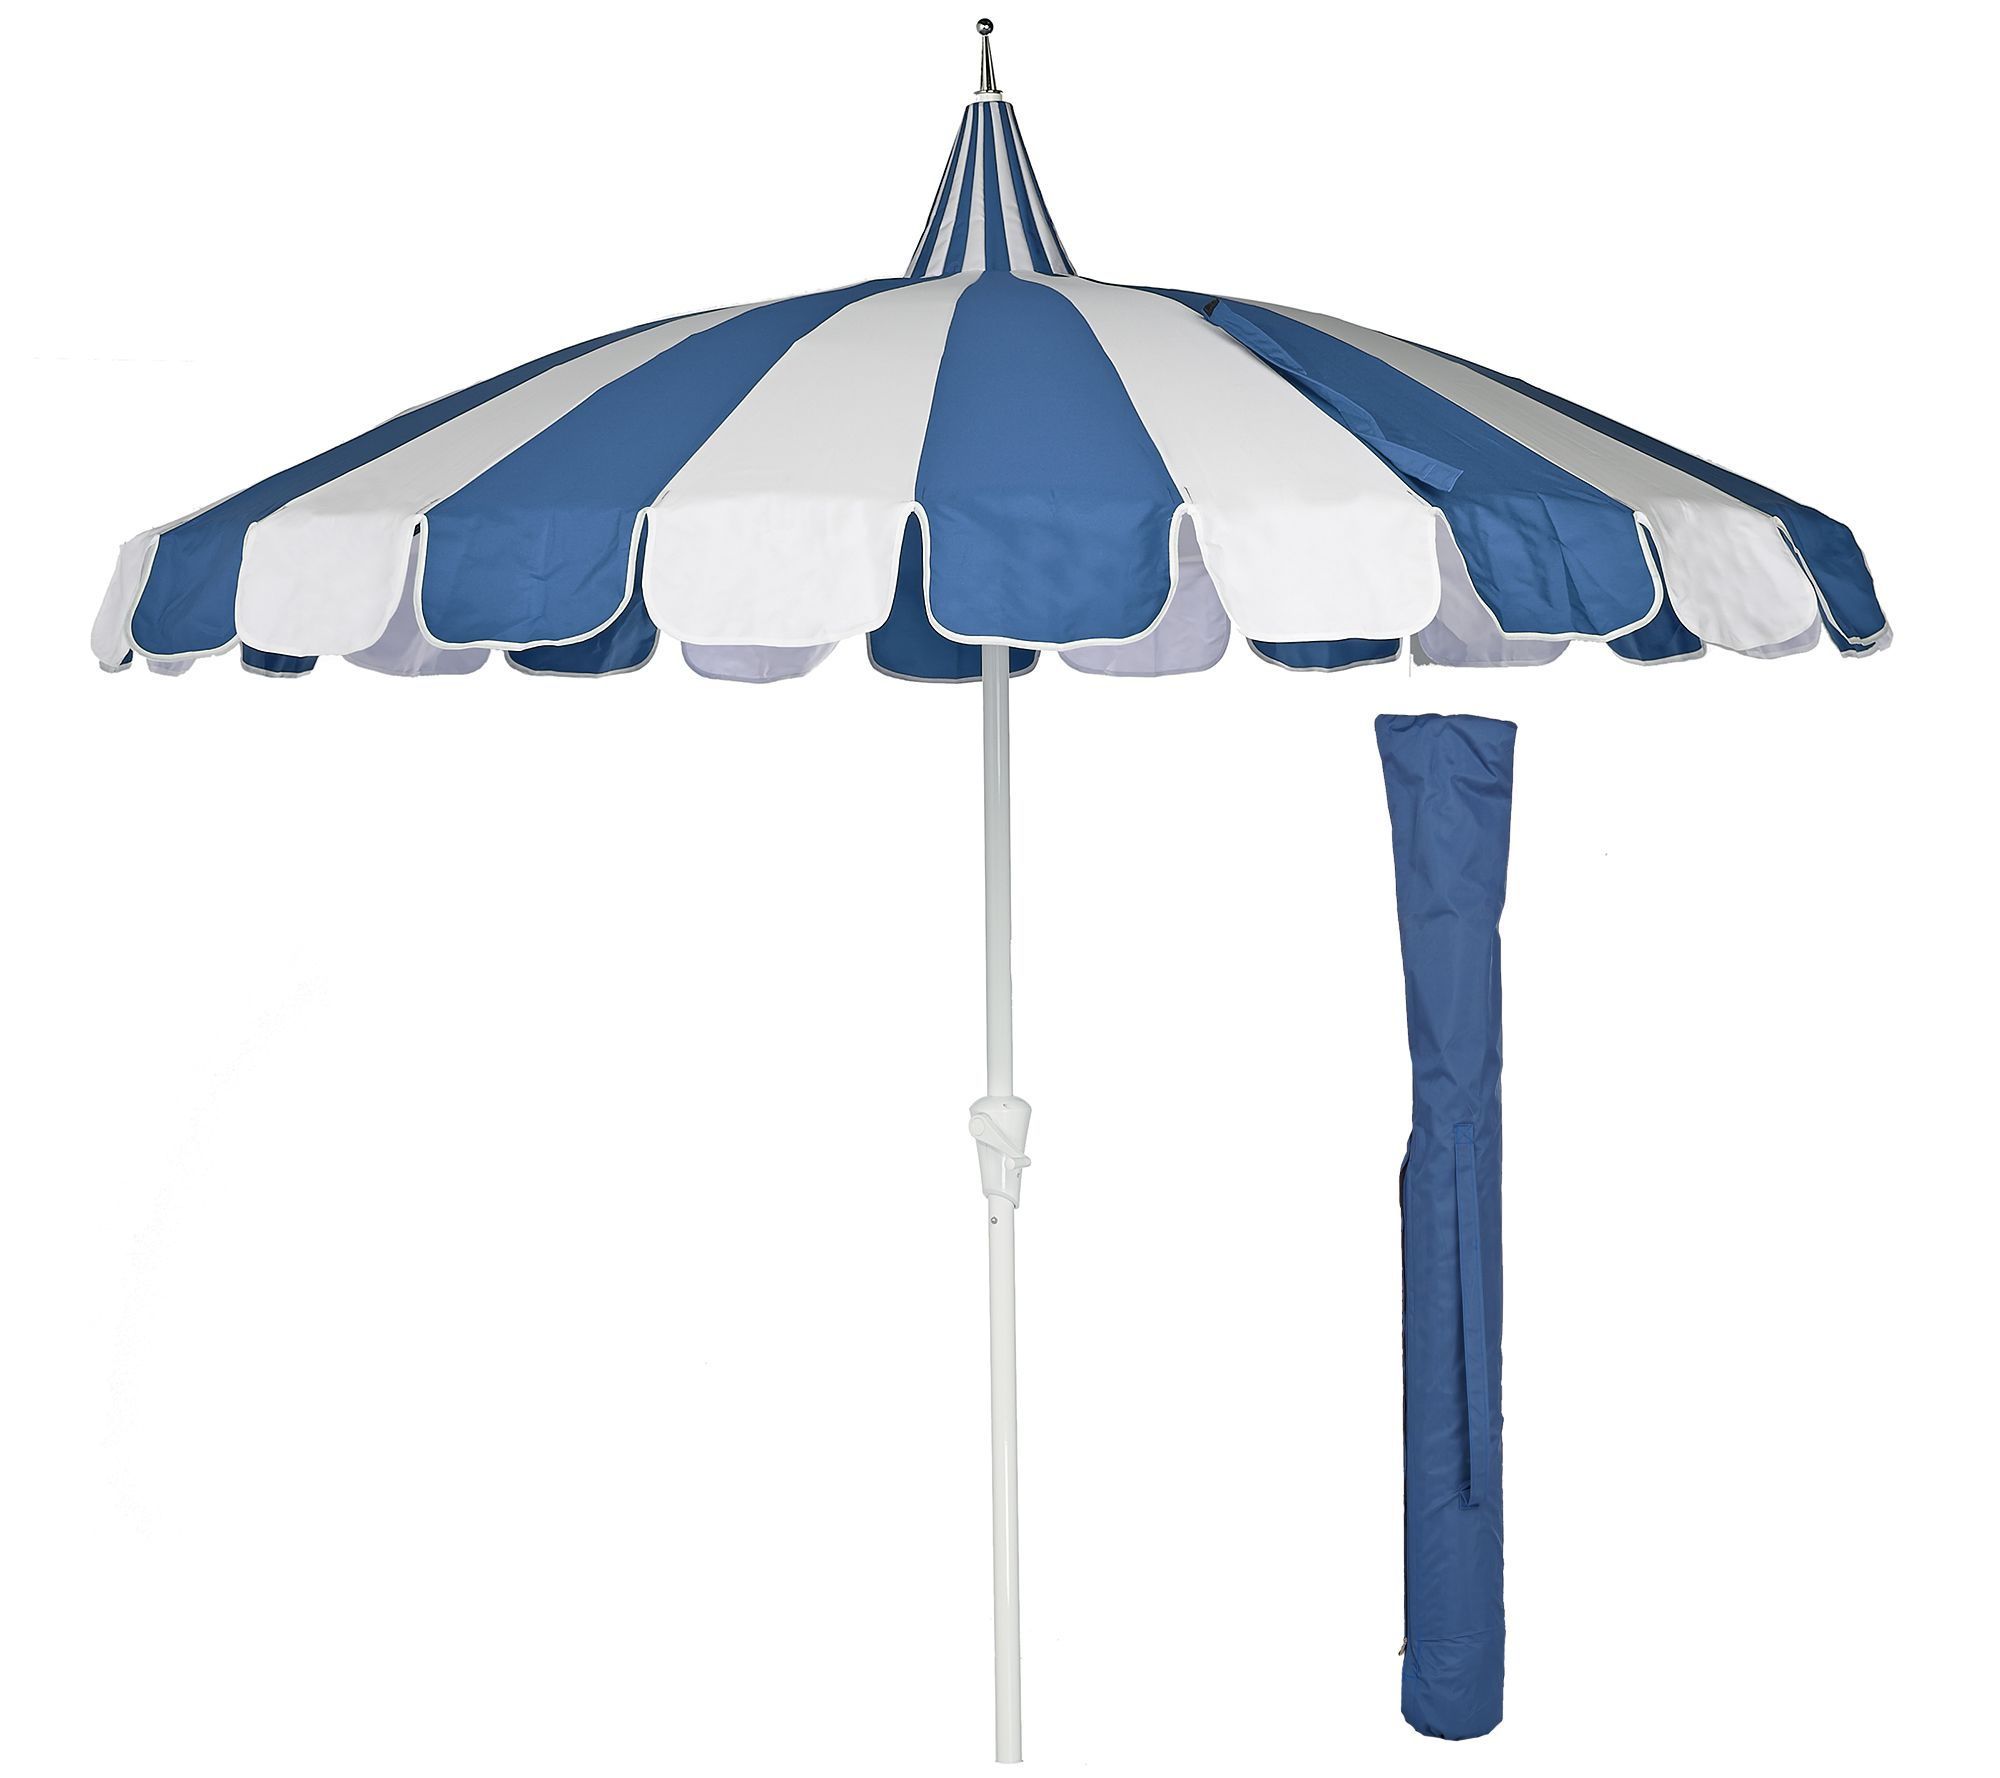 Merveilleux ED On Air 8u0027 Pagoda Umbrella W/ Cover By Ellen DeGeneres   Page 1 U2014 QVC.com